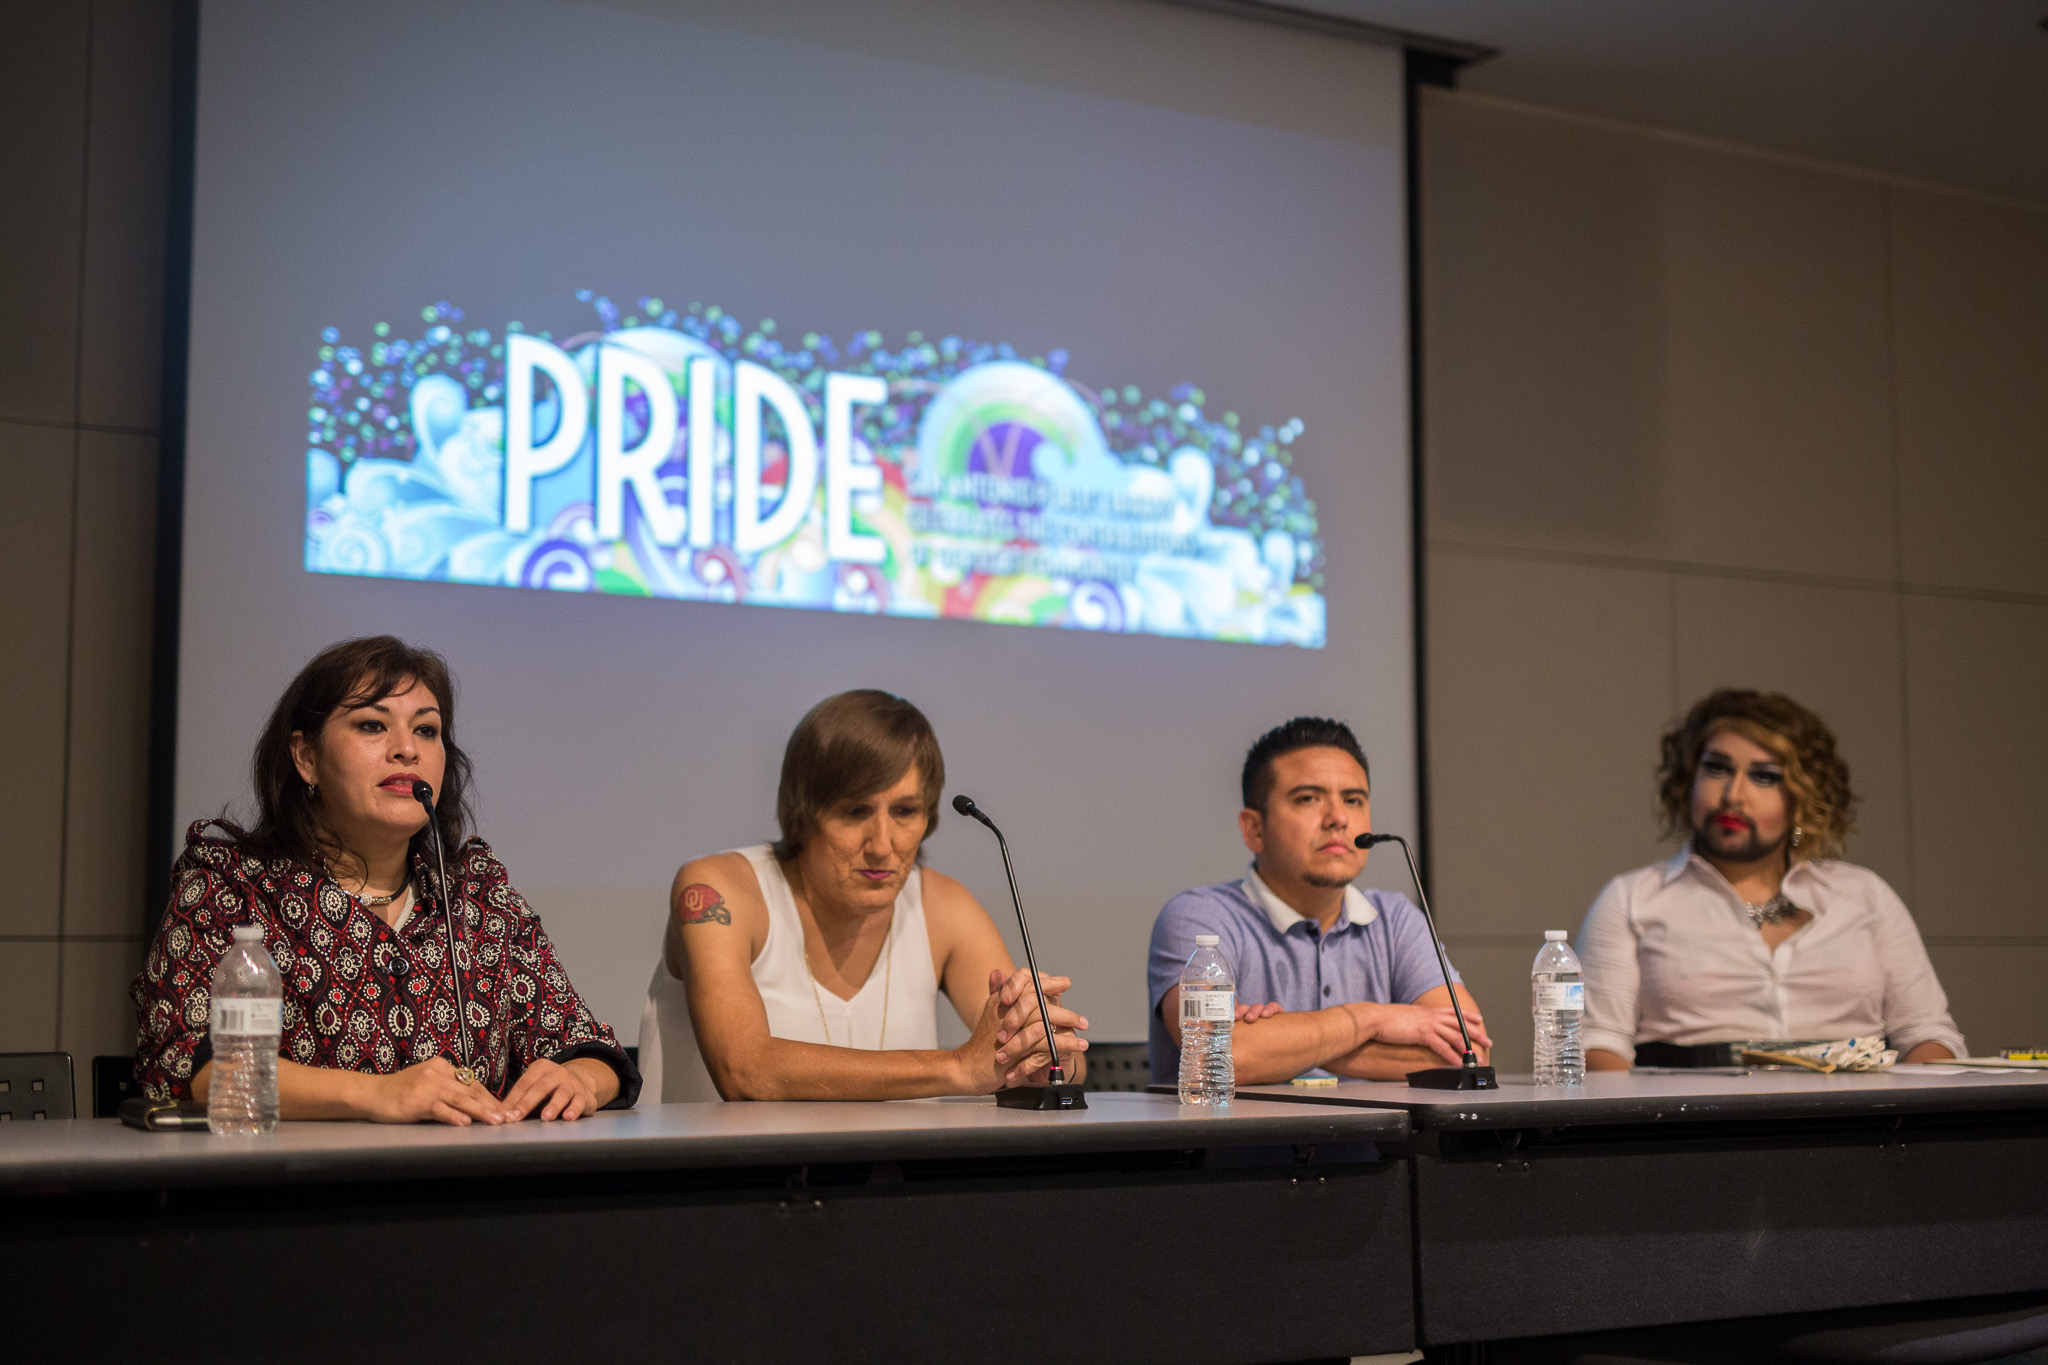 Panelists (left to right) Alejandra Galindo-Cantu, Ashleigh Brown, Erick Macias along with moderator Foxxy Blue Orchid discuss coming out at the San Antonio Central Library. Photo by Scott Ball.